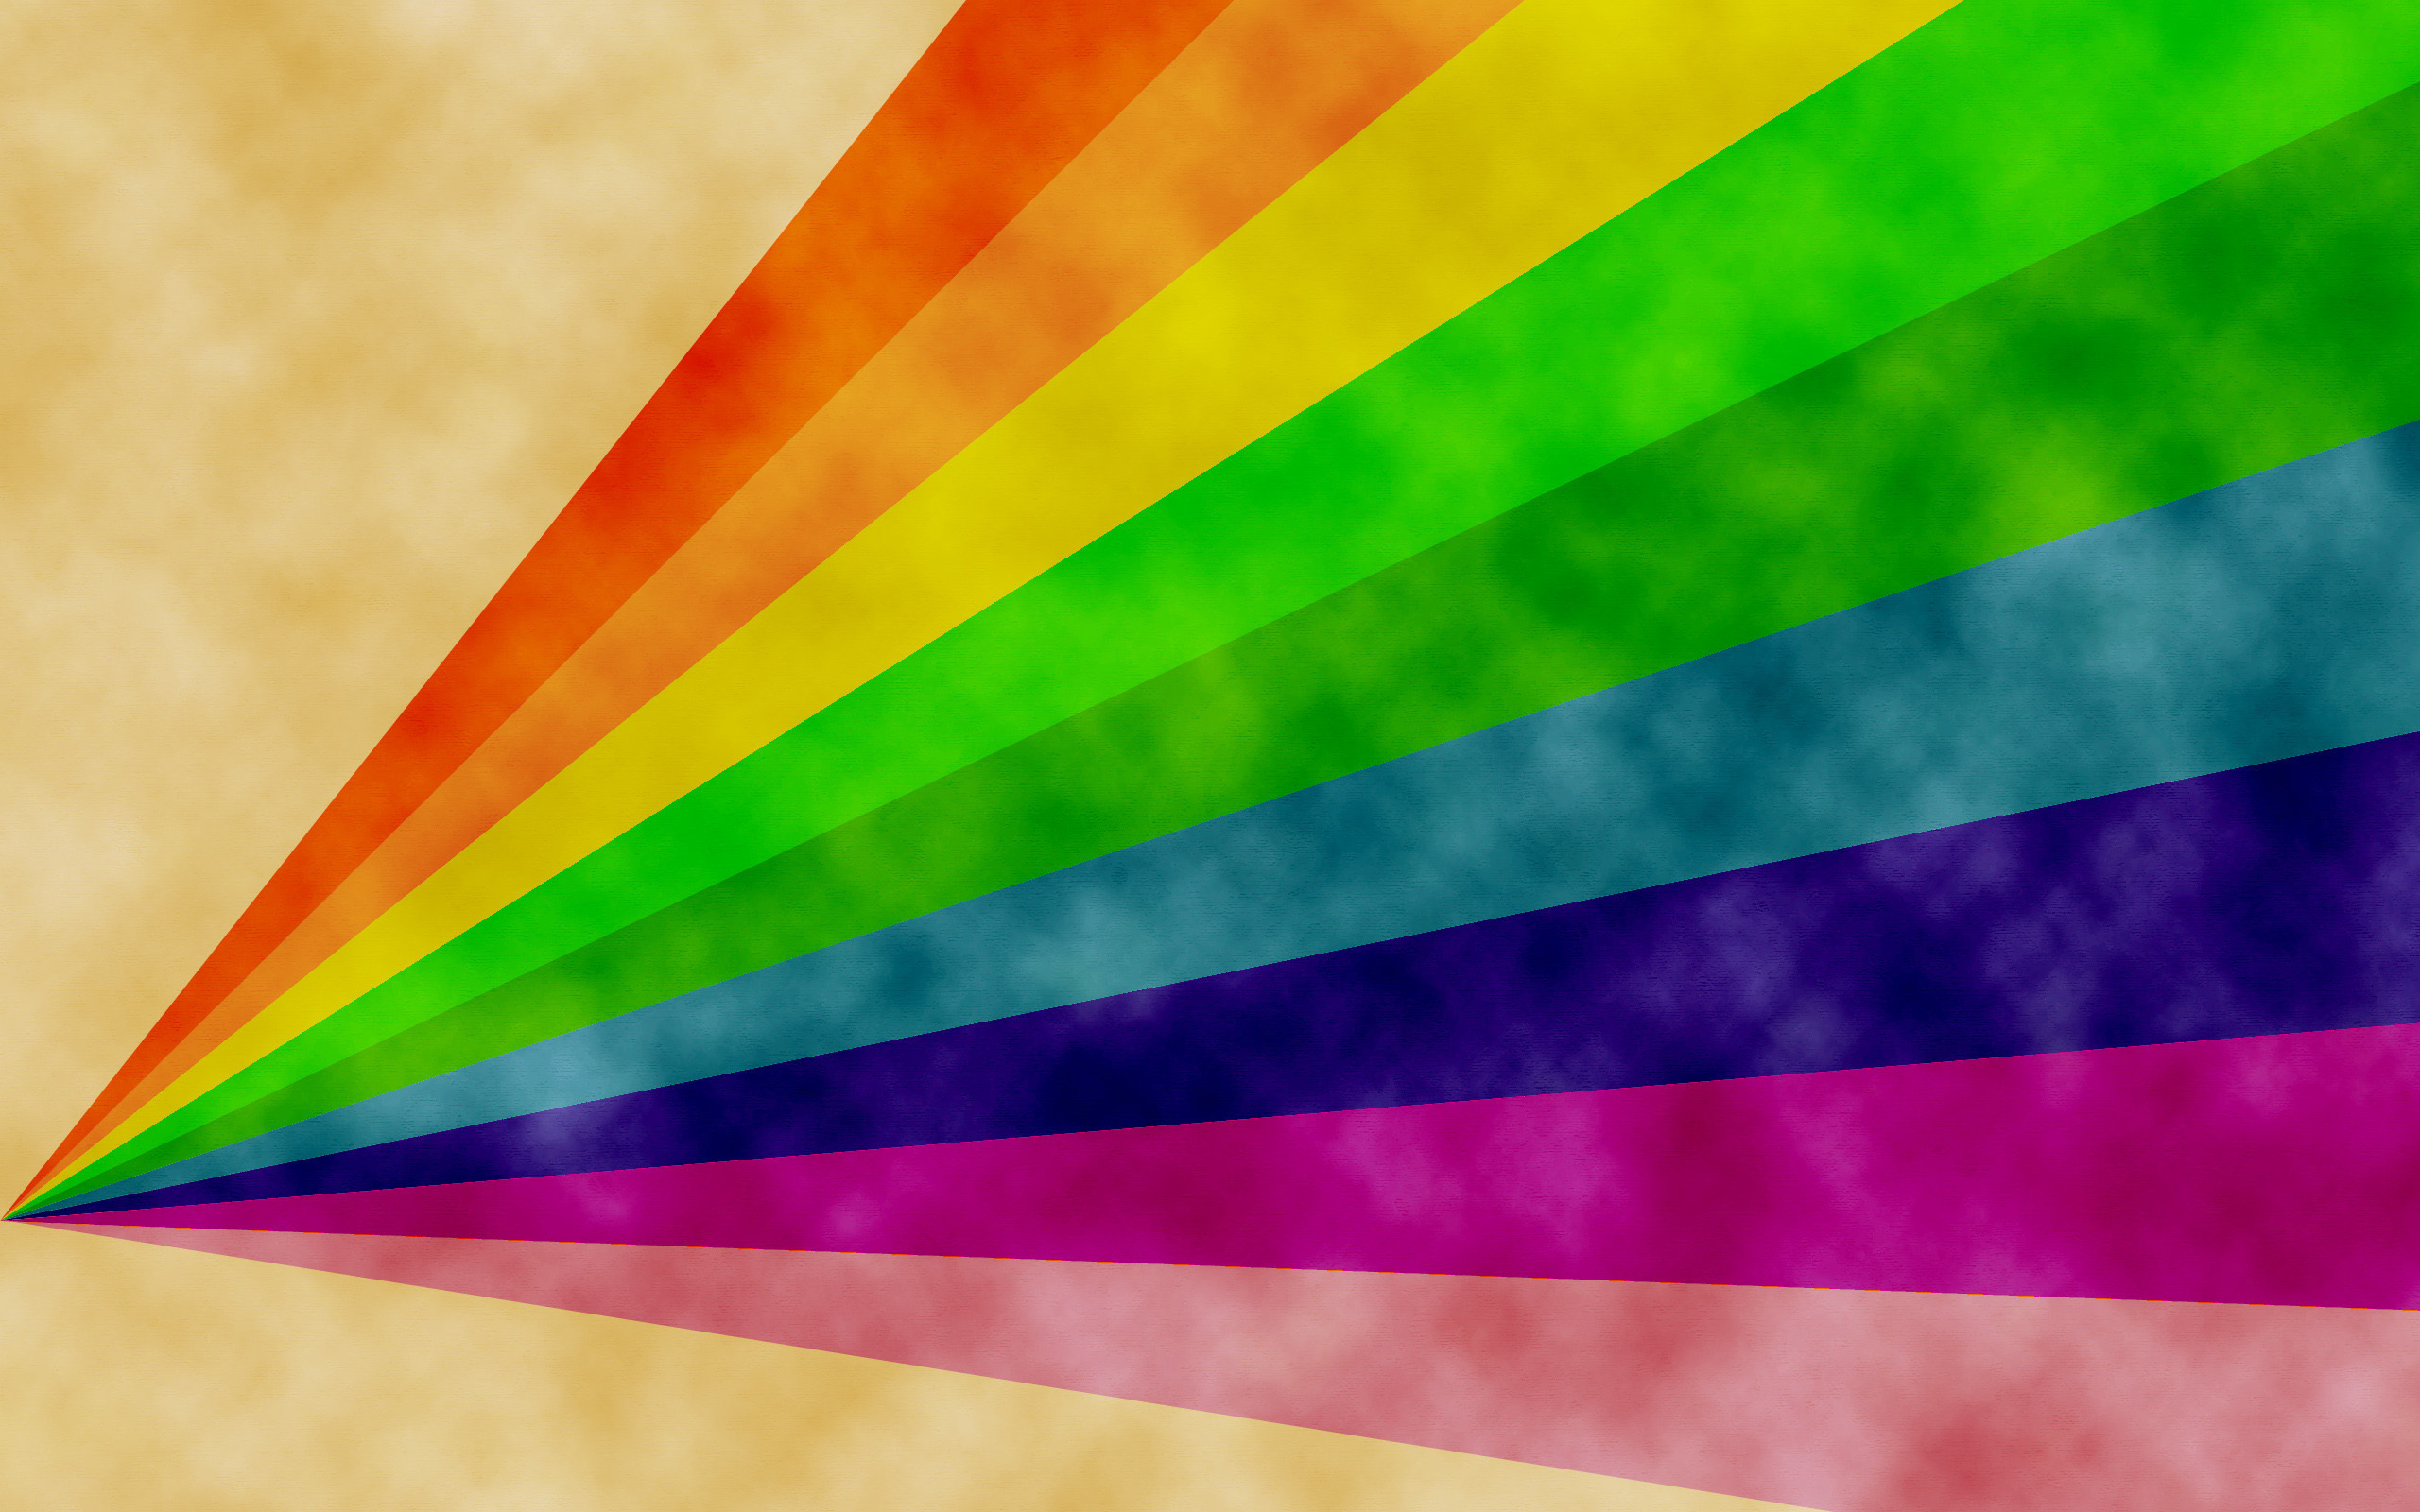 background image with rainbow colours in stripes